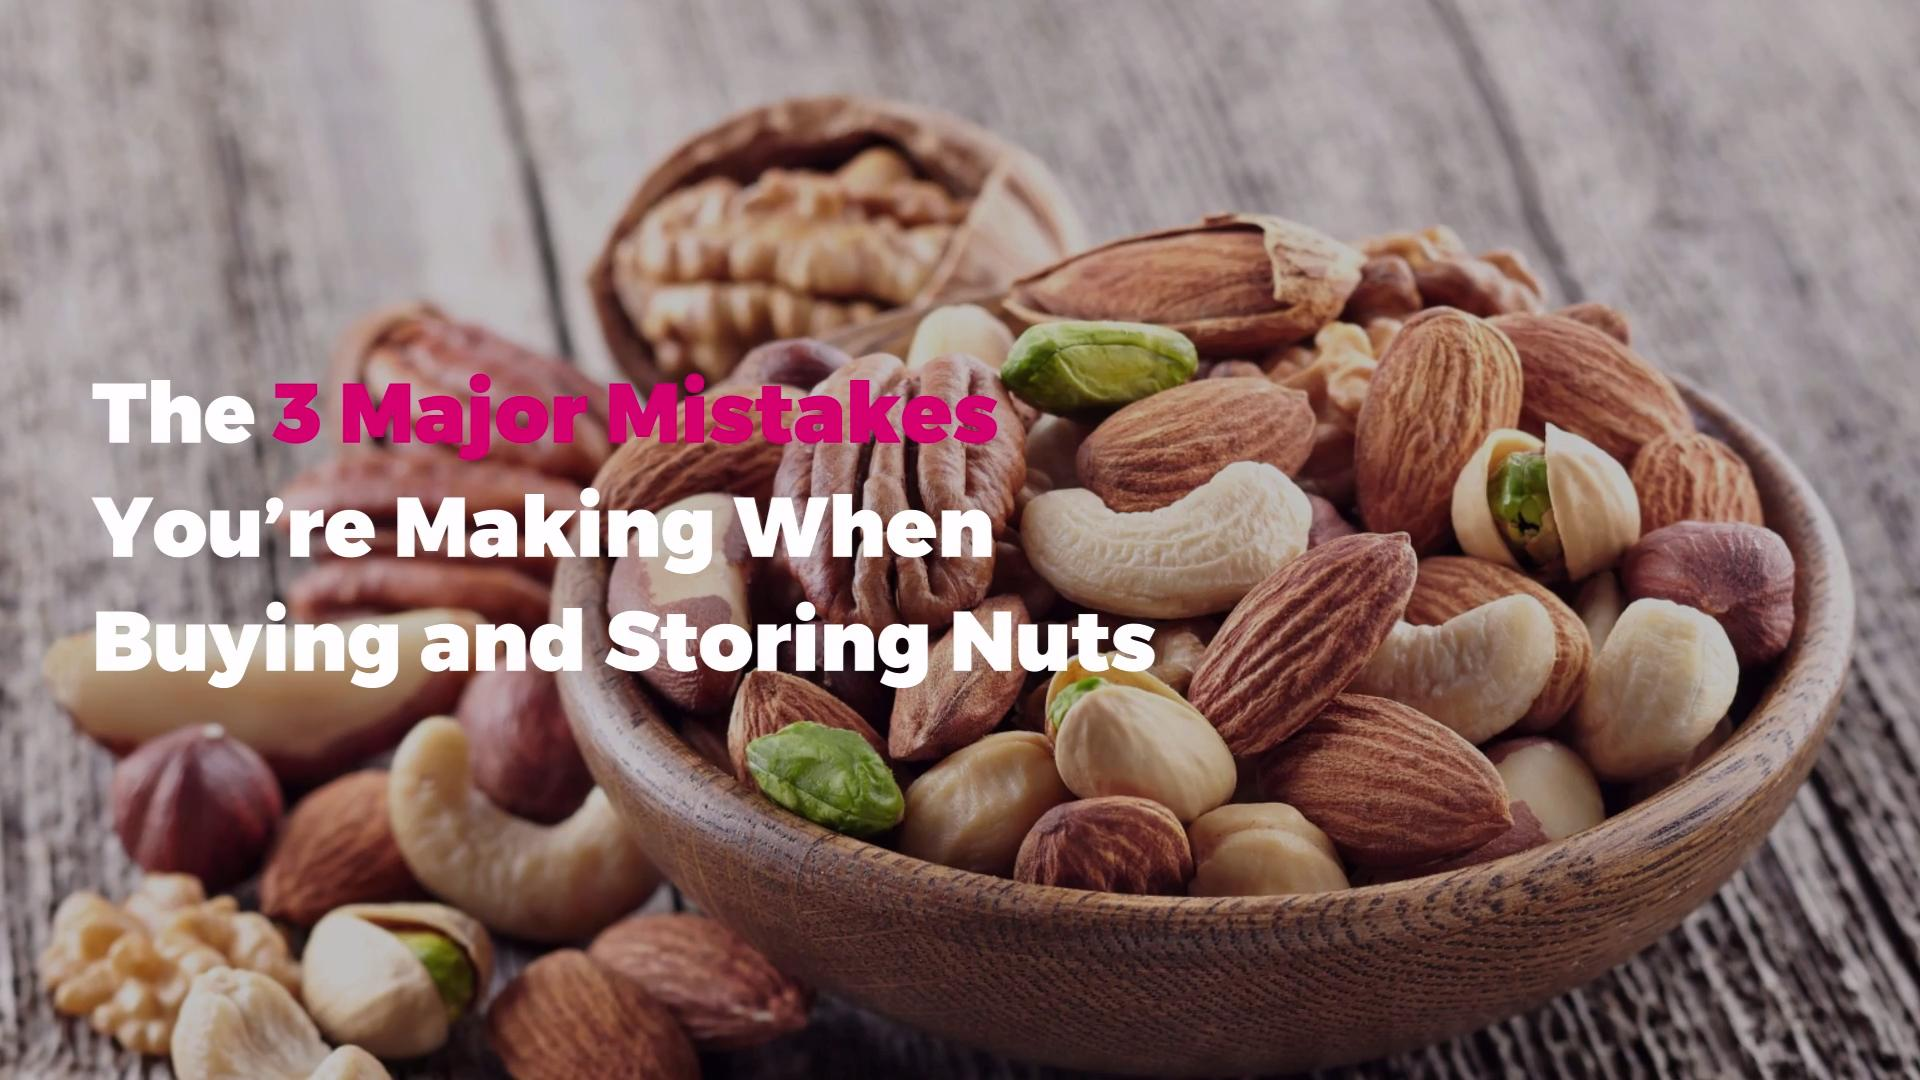 The 3 Major Mistakes You're Making When Buying and Storing Nuts